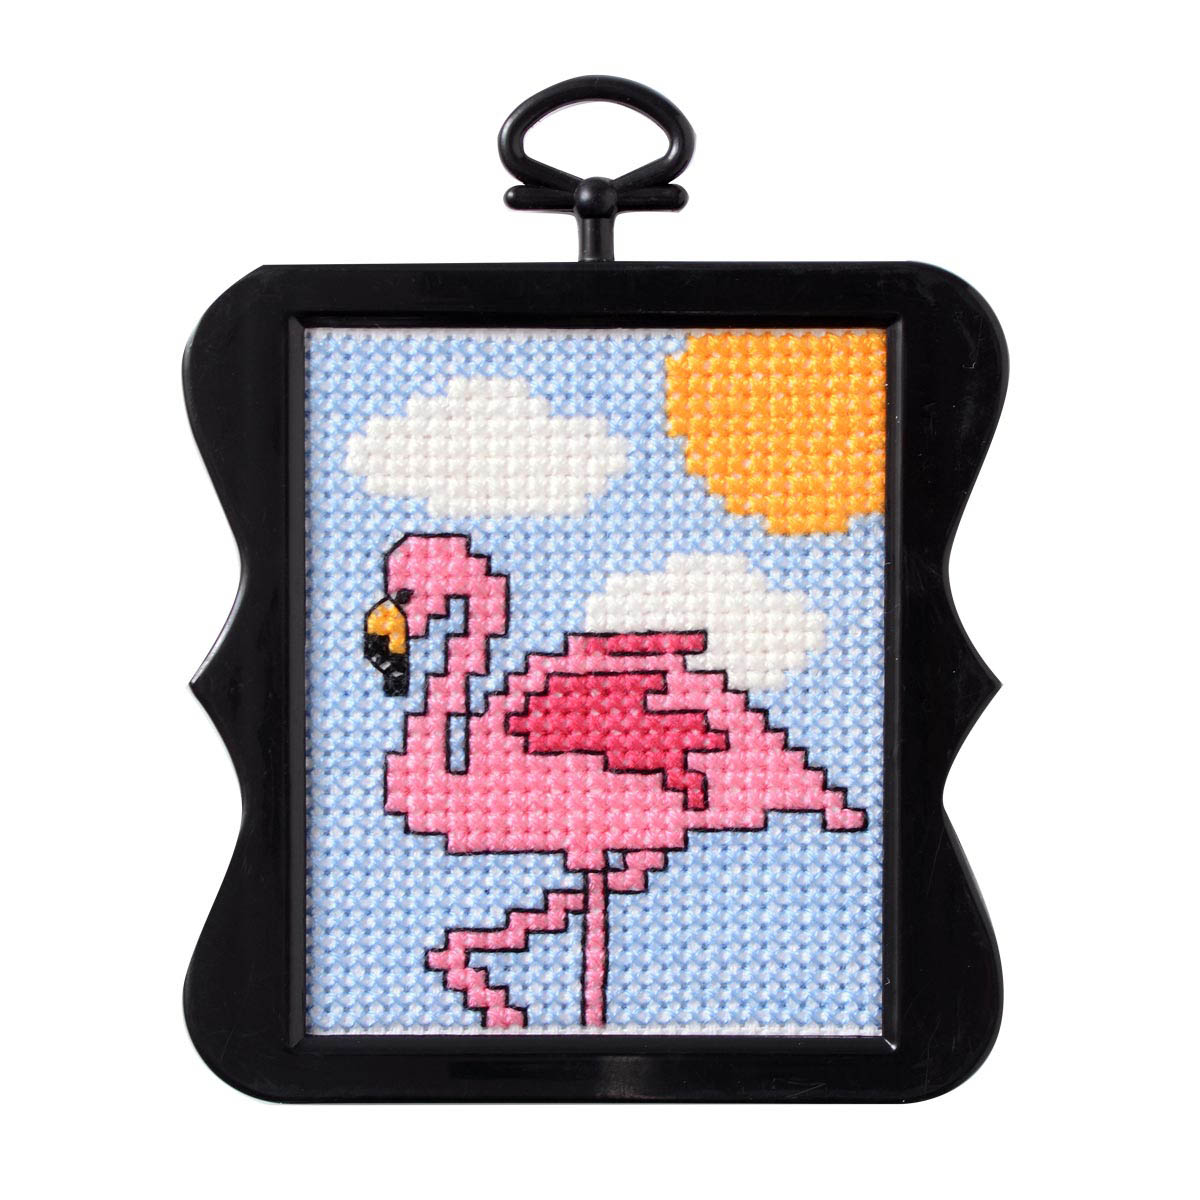 Bucilla ® Counted Cross Stitch - Beginner Stitchery - Mini - Flamingo